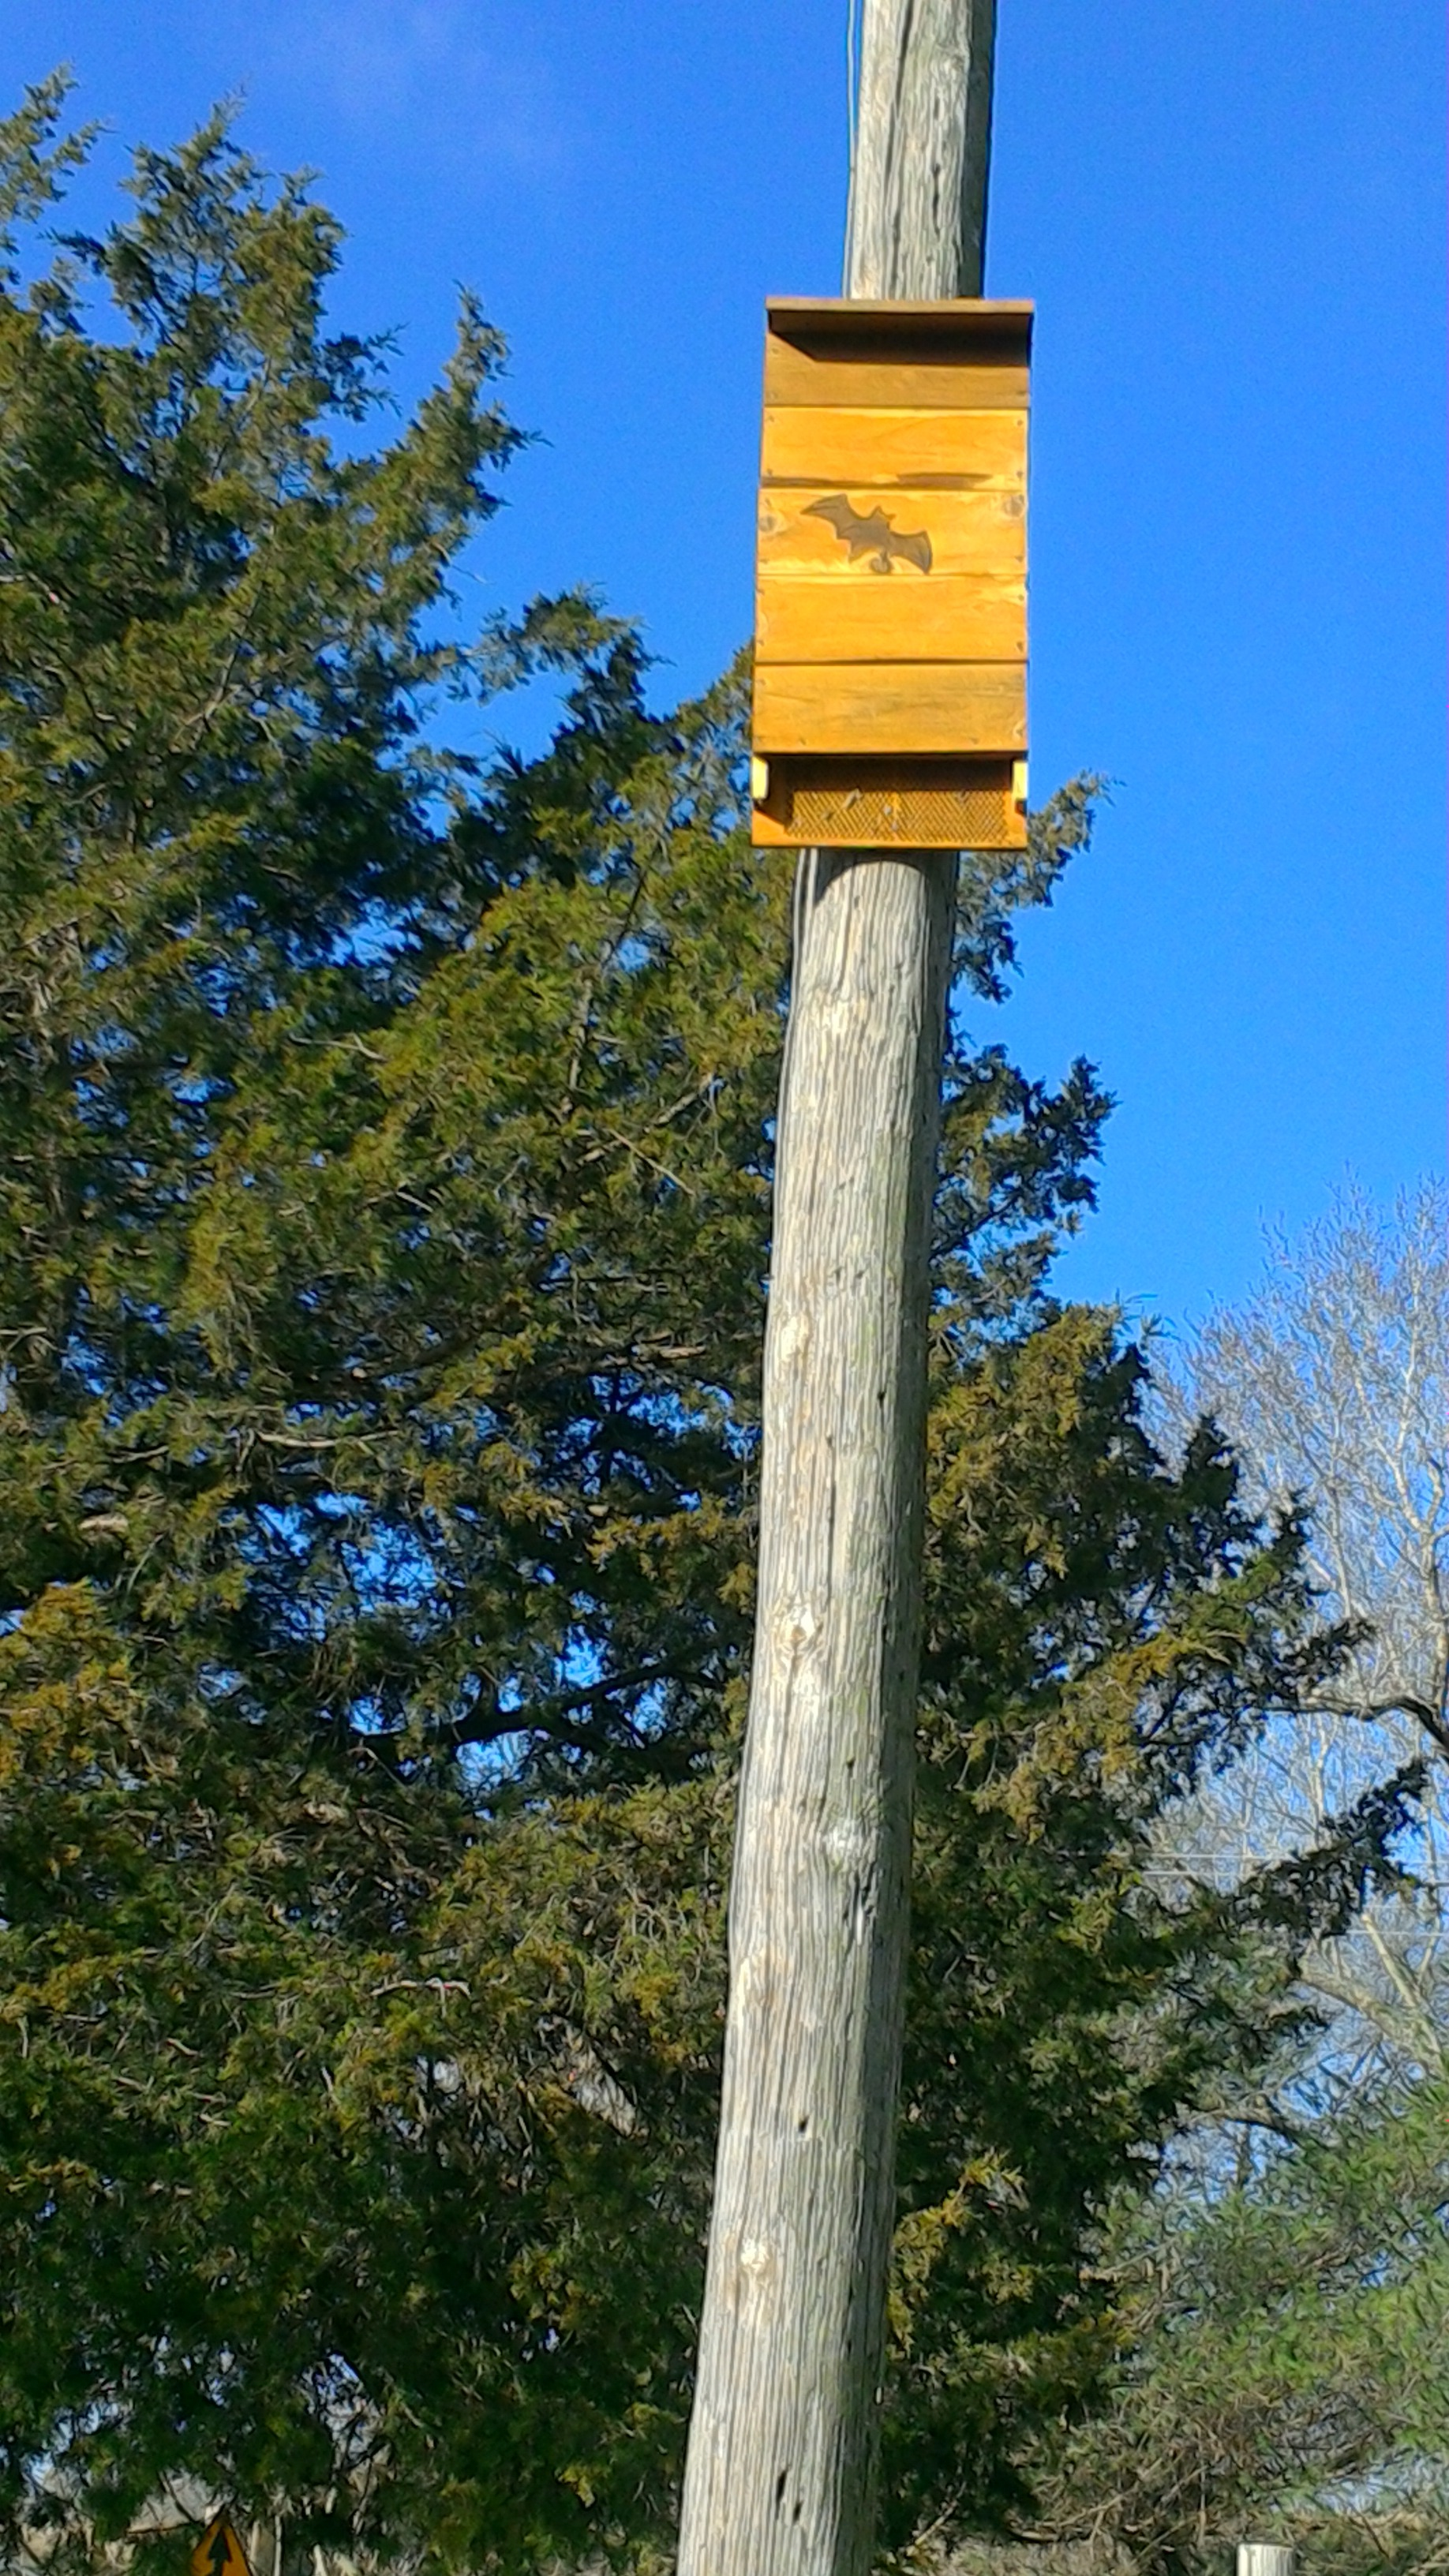 bat house on pole.jpg